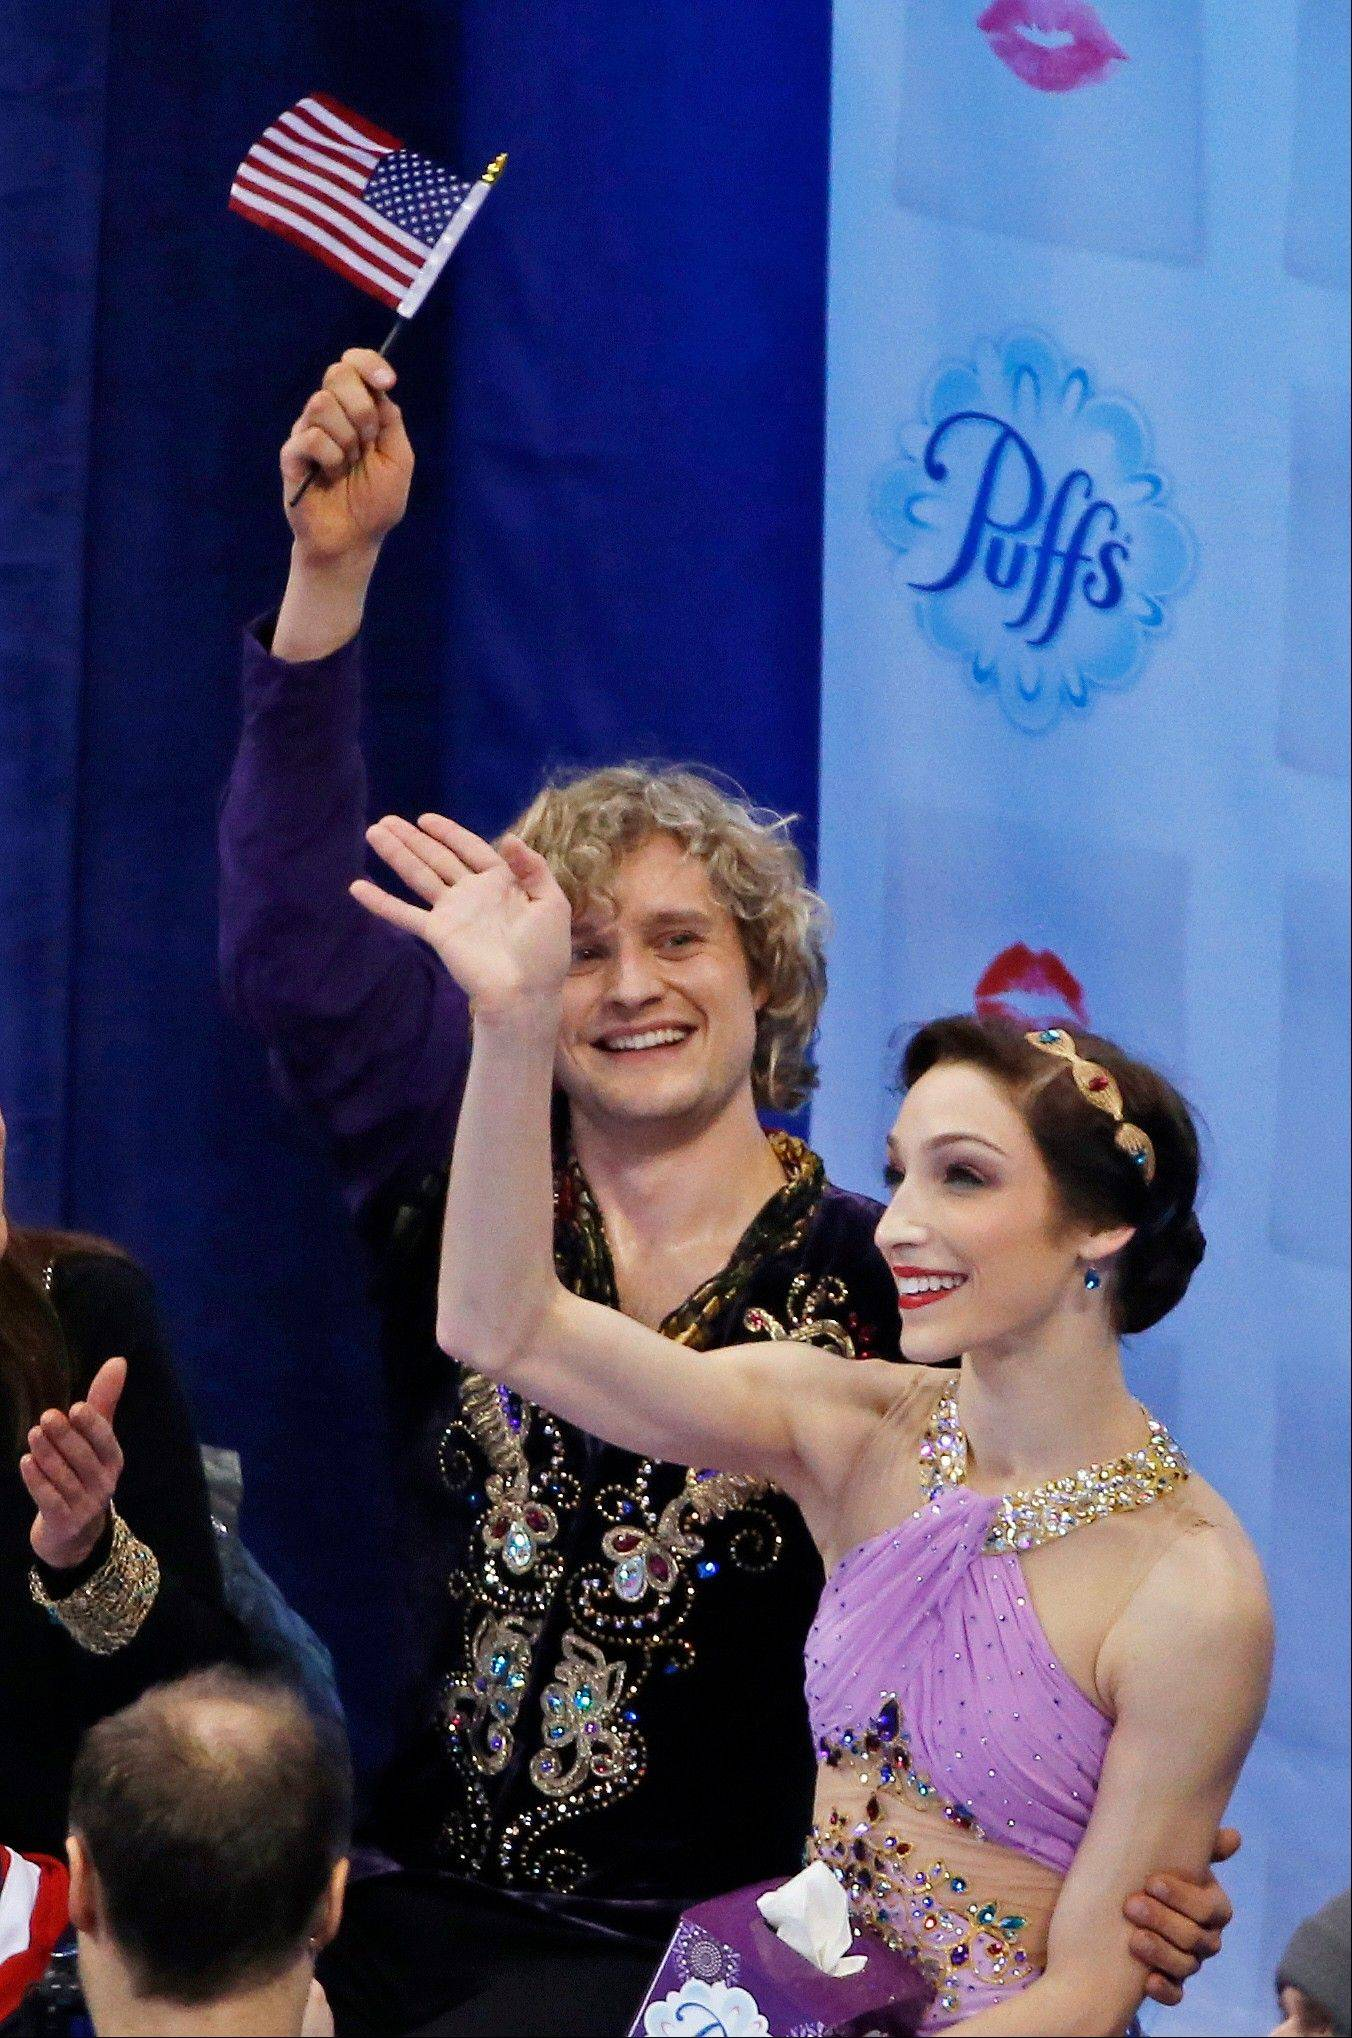 Davis, White win 6th straight US ice dance title